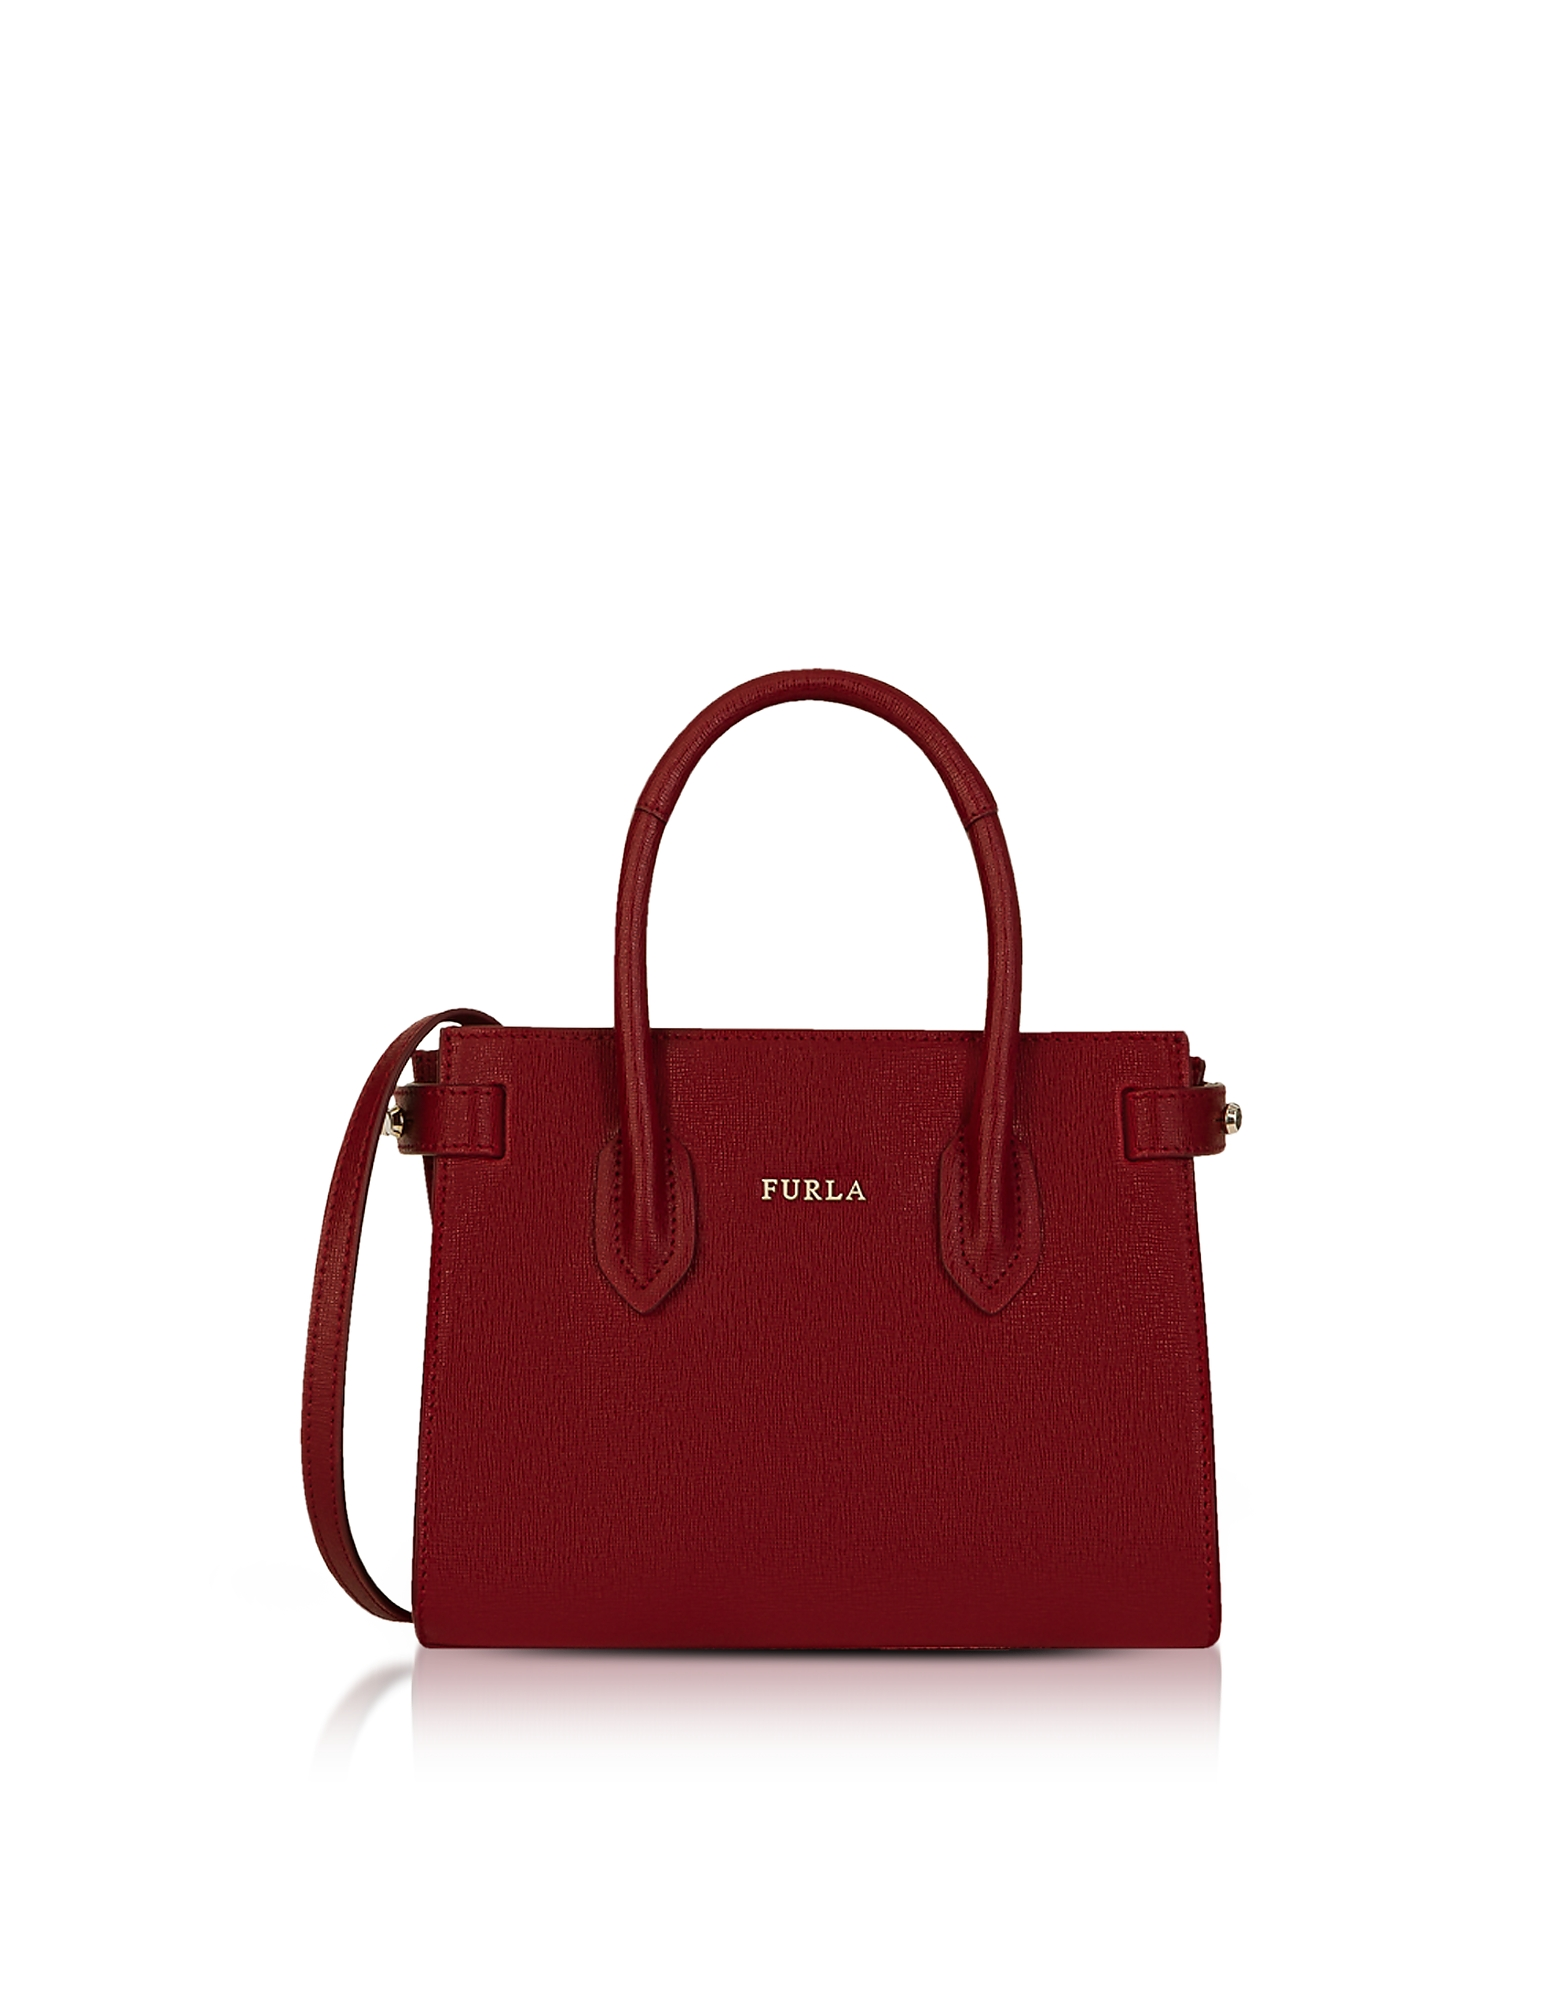 Furla Handbags, Pin Mini Tote Bag w/Shoulder Strap